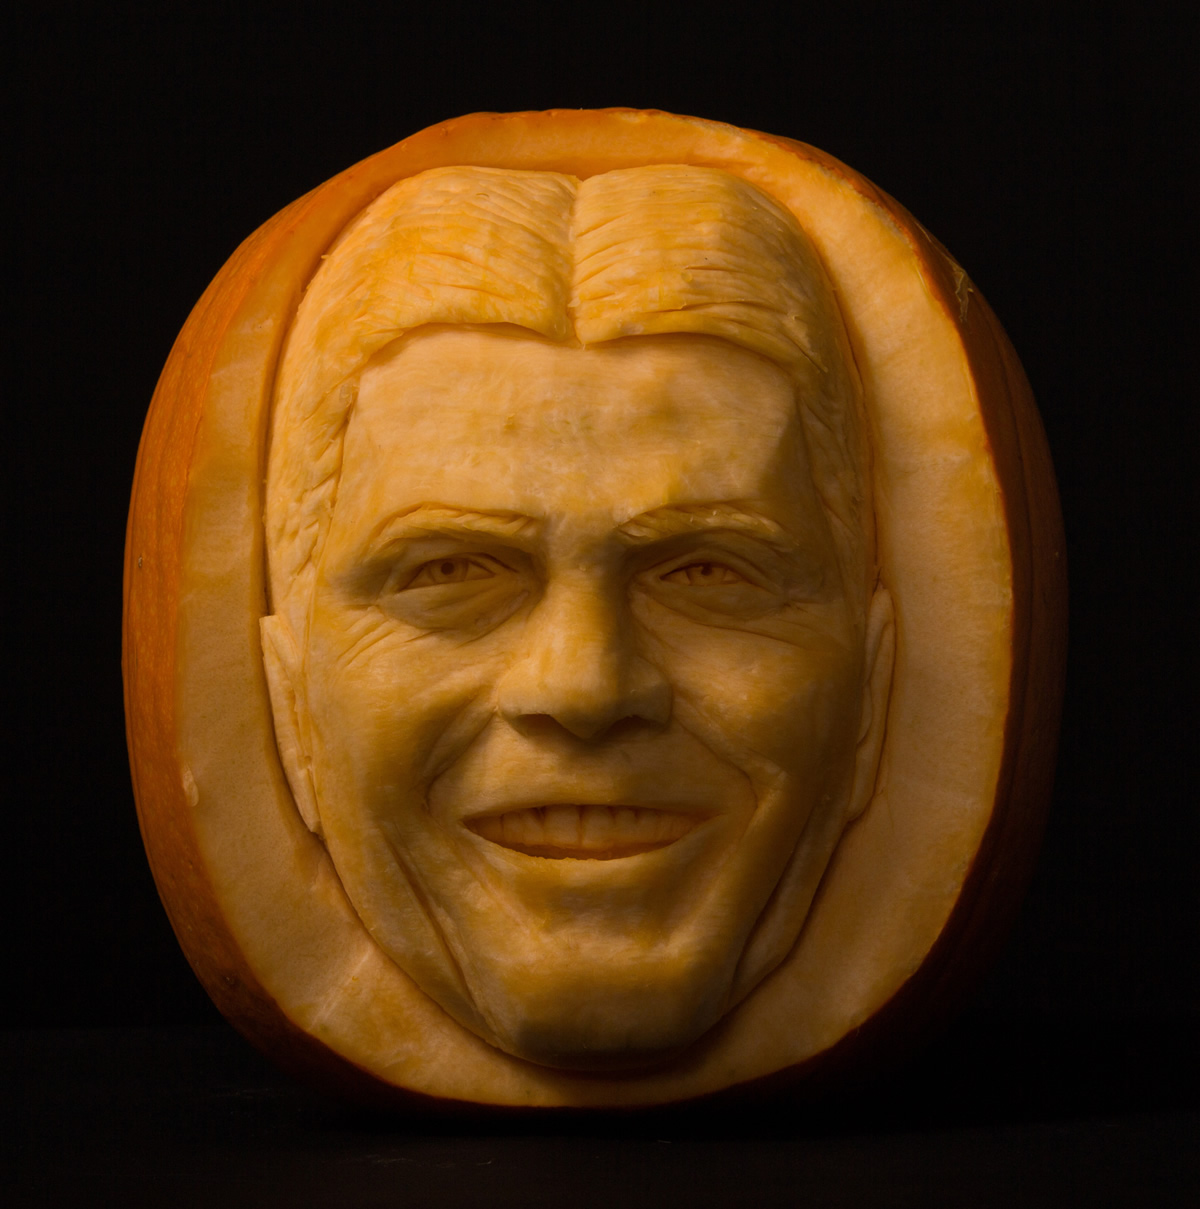 Famous face Simon Cowell carved into a pumpkin